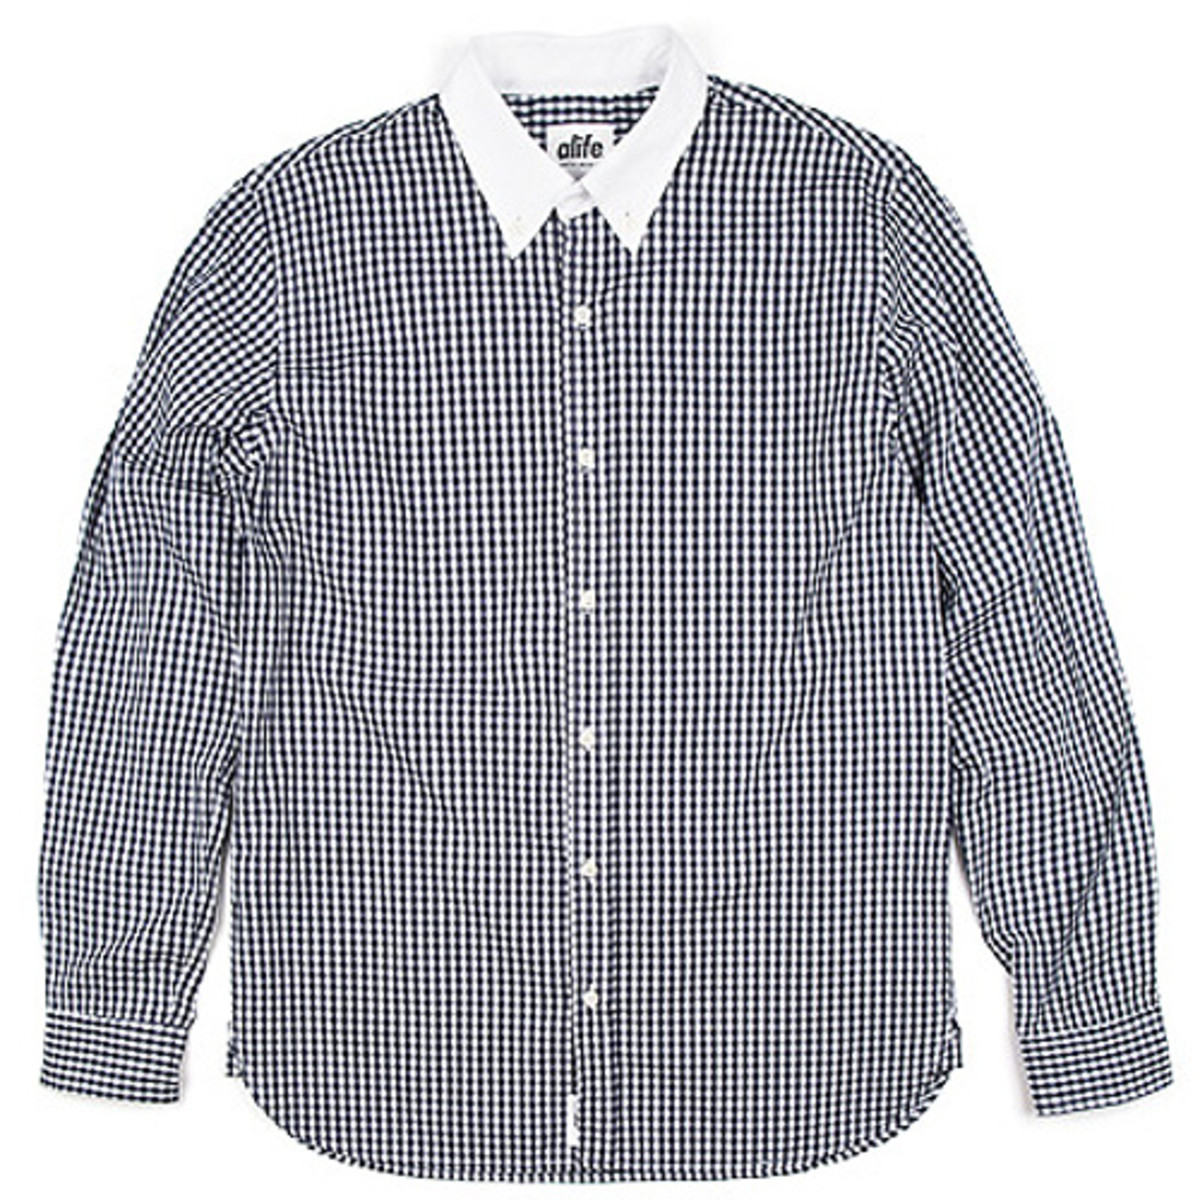 alife-spring-2010-button-down-shirt-06